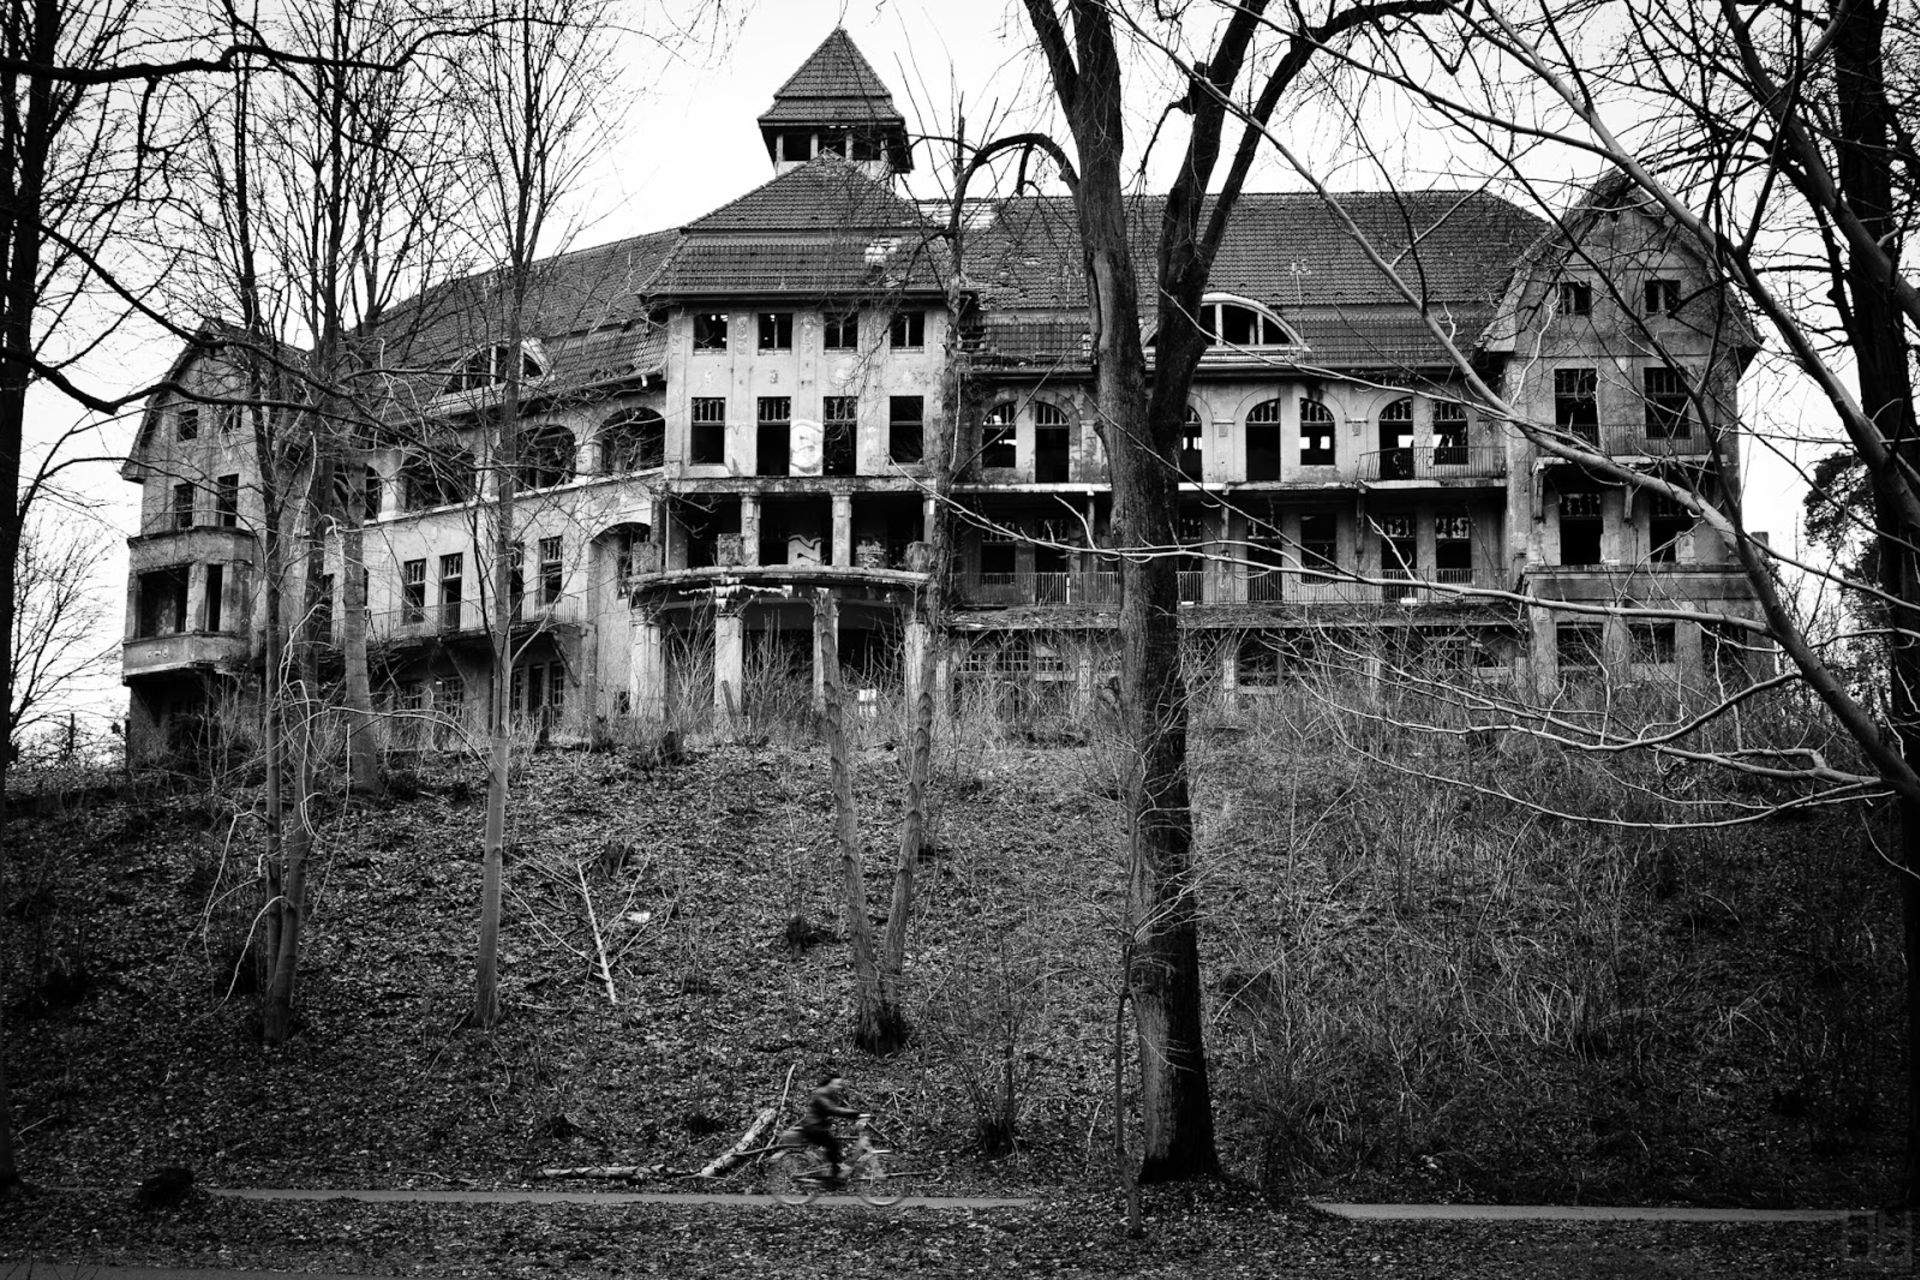 From Haunted House to Inviting Home